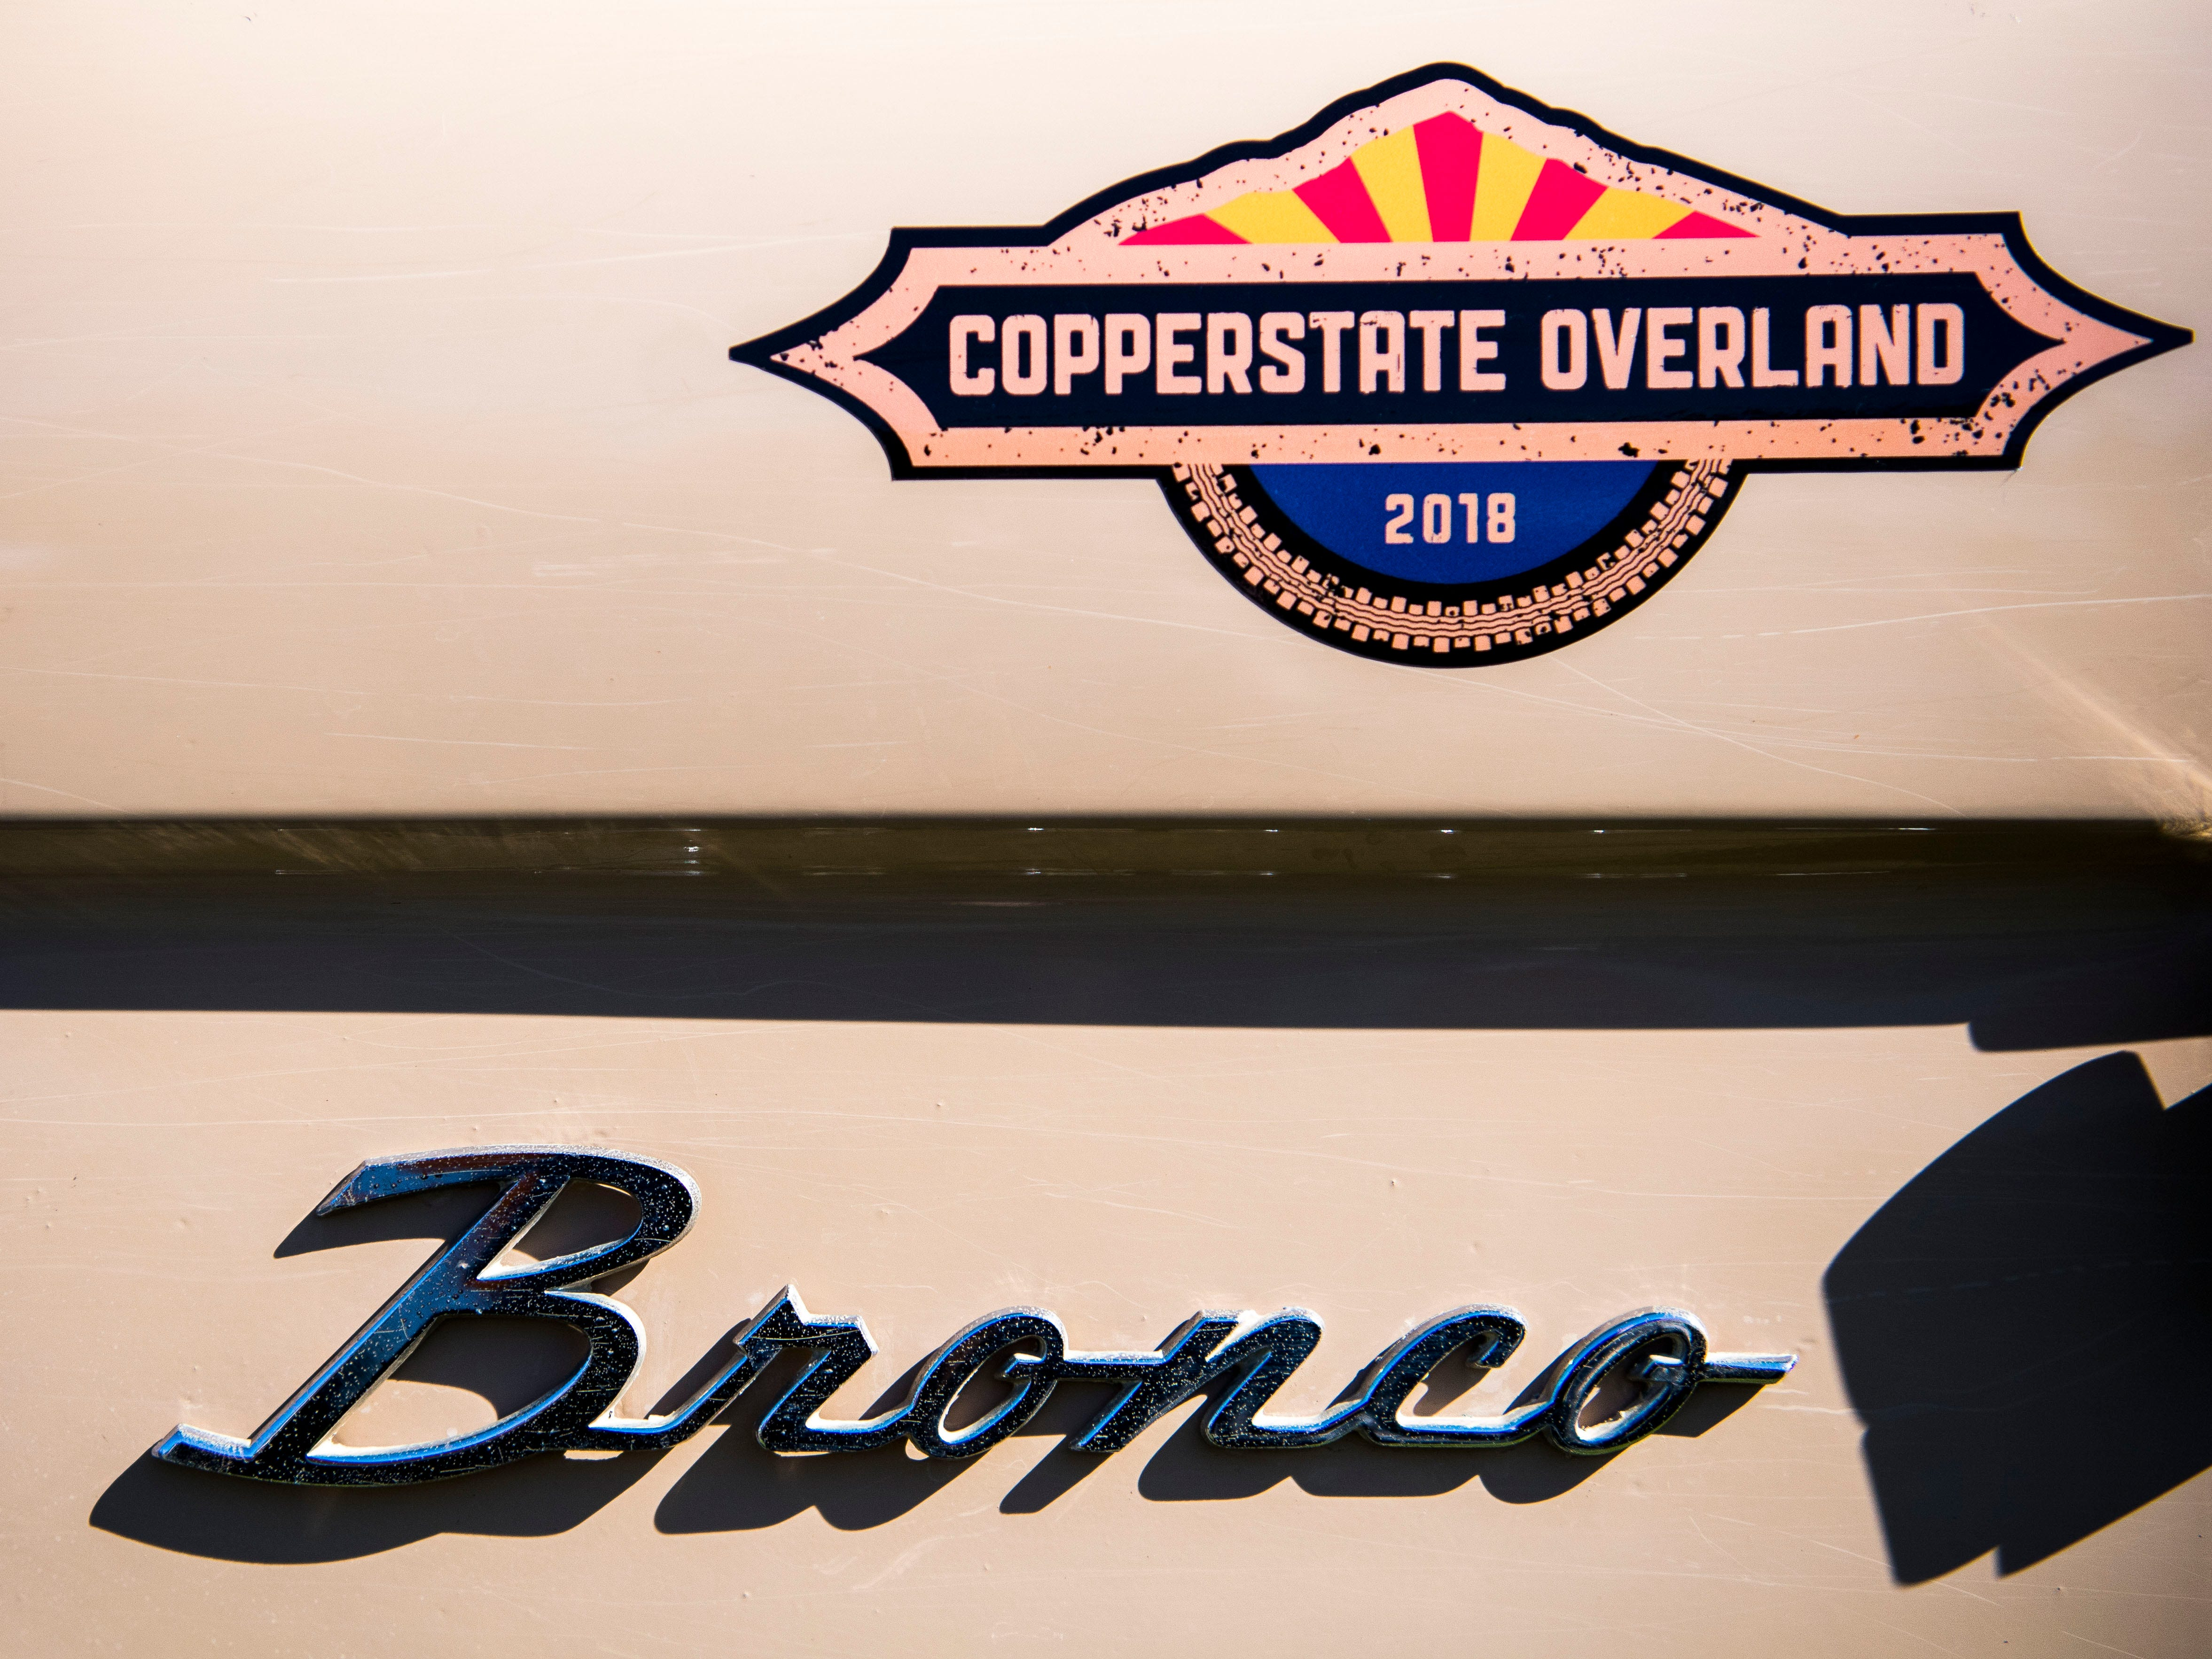 Details on a Ford Bronco on display at the Bronco Super Celebration event held at Tally Ho Inn in Townsend, Tenn. Between 500 and 600 Broncos are expected at the event, which will run from April 10, 2019, to April 13, 2019.